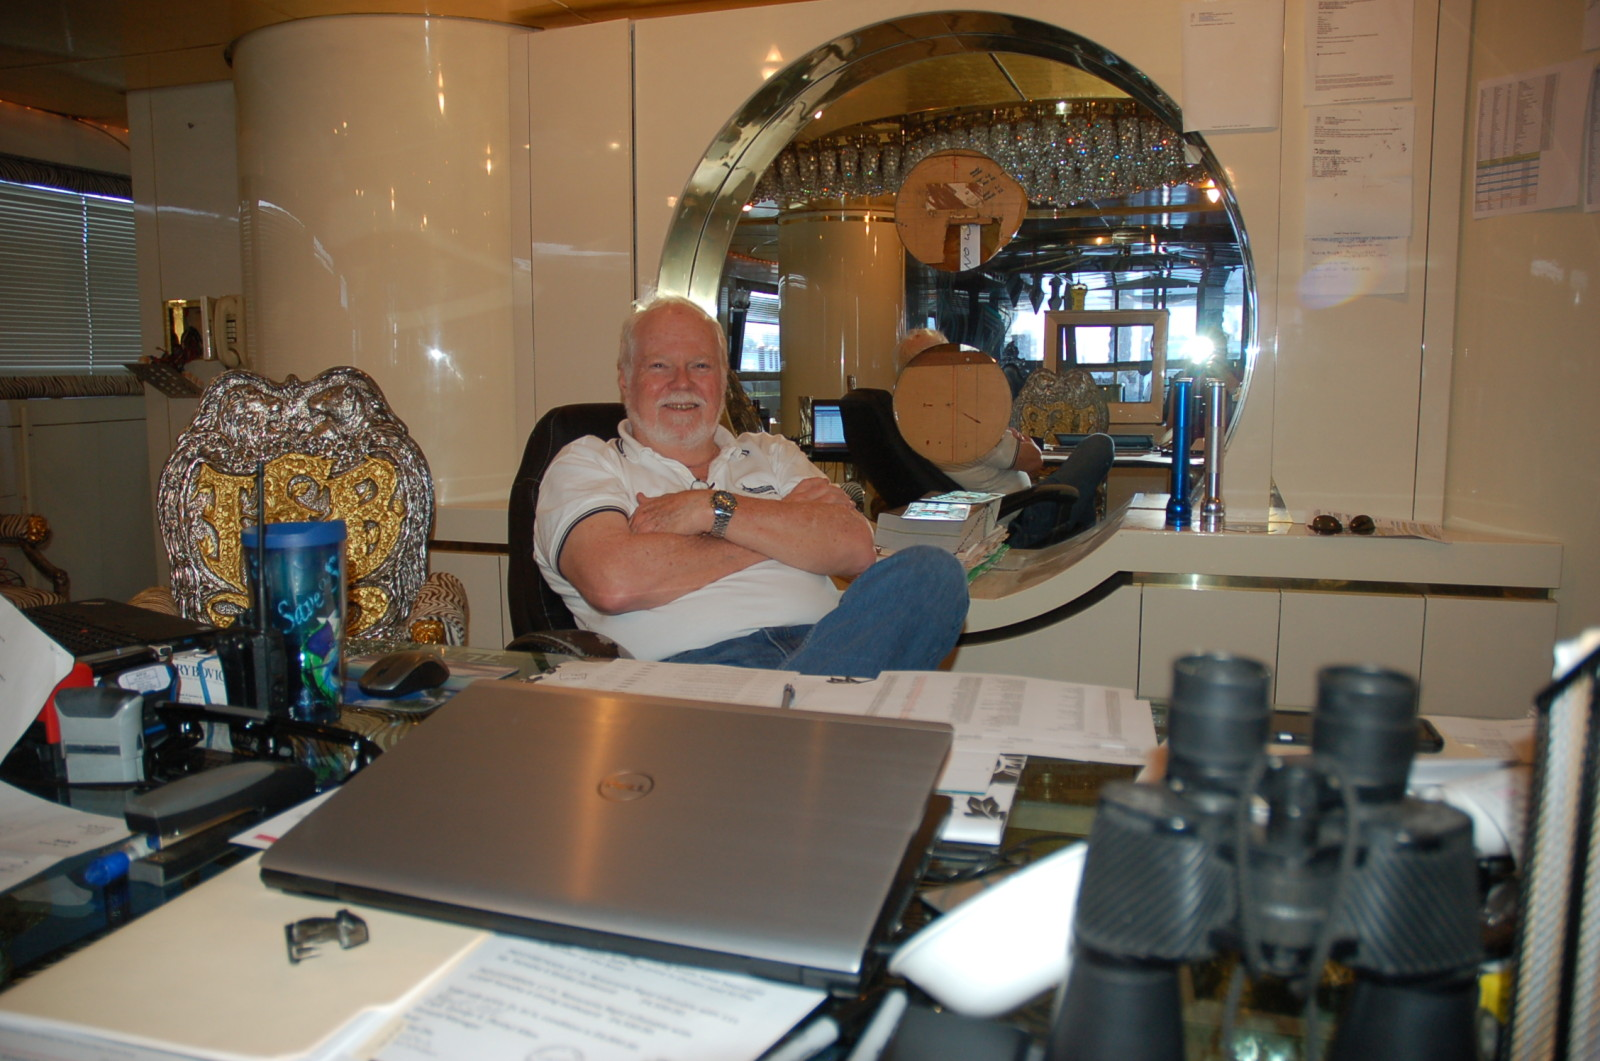 Capt. Rusty Allen, fleet manager for vessels in the Natita fleet, has set up his office in the main dining room of M/Y Mystere, a yacht built in 1987 by Lloyds Ship and awaiting a refit. PHOTO/LUCY REED